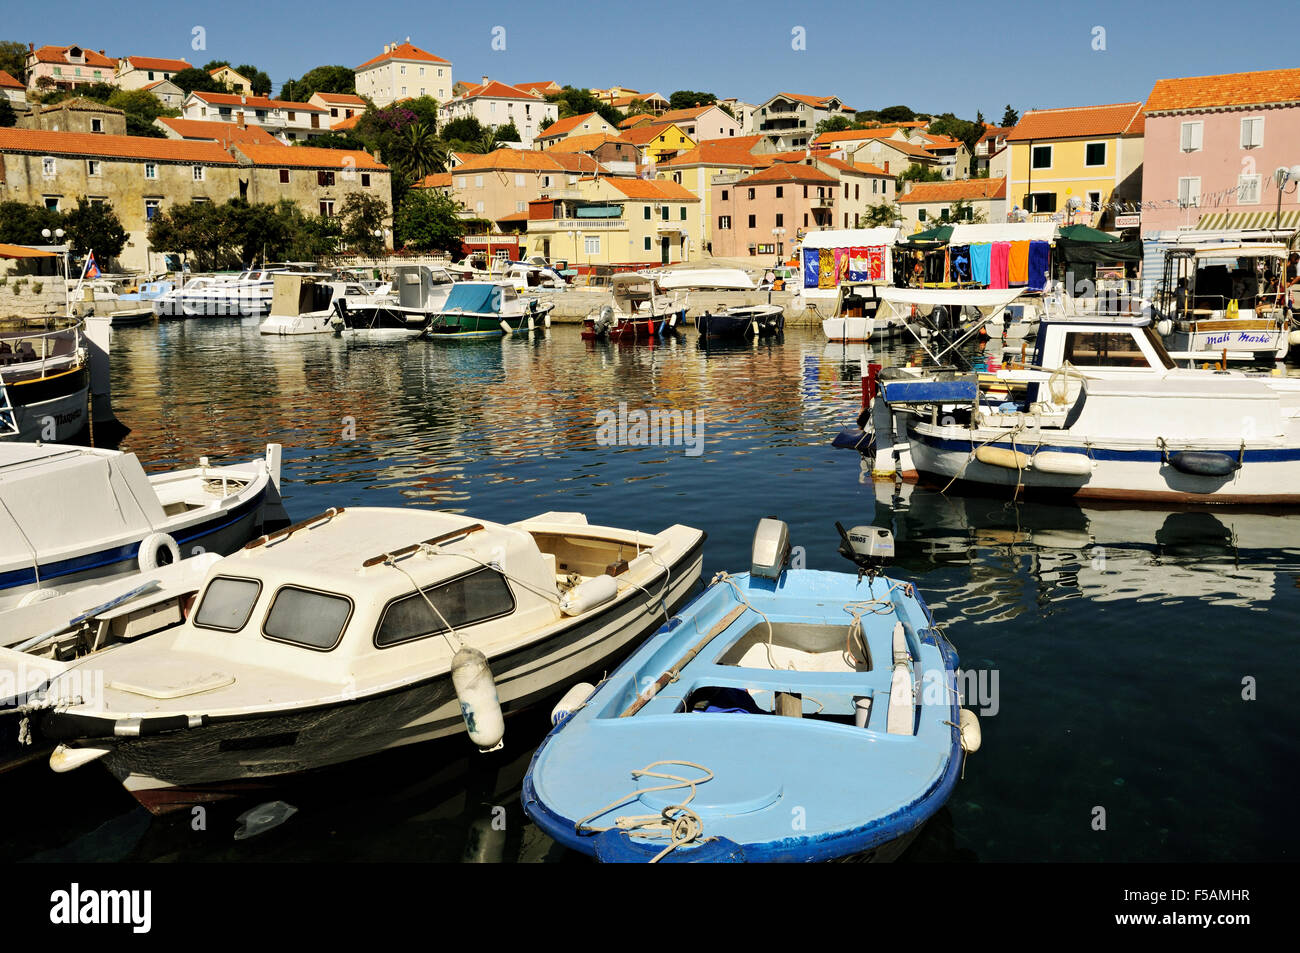 Boats in the harbor of Sali, the largest village on Dugi Otok, Zadar County, Croatia Stock Photo